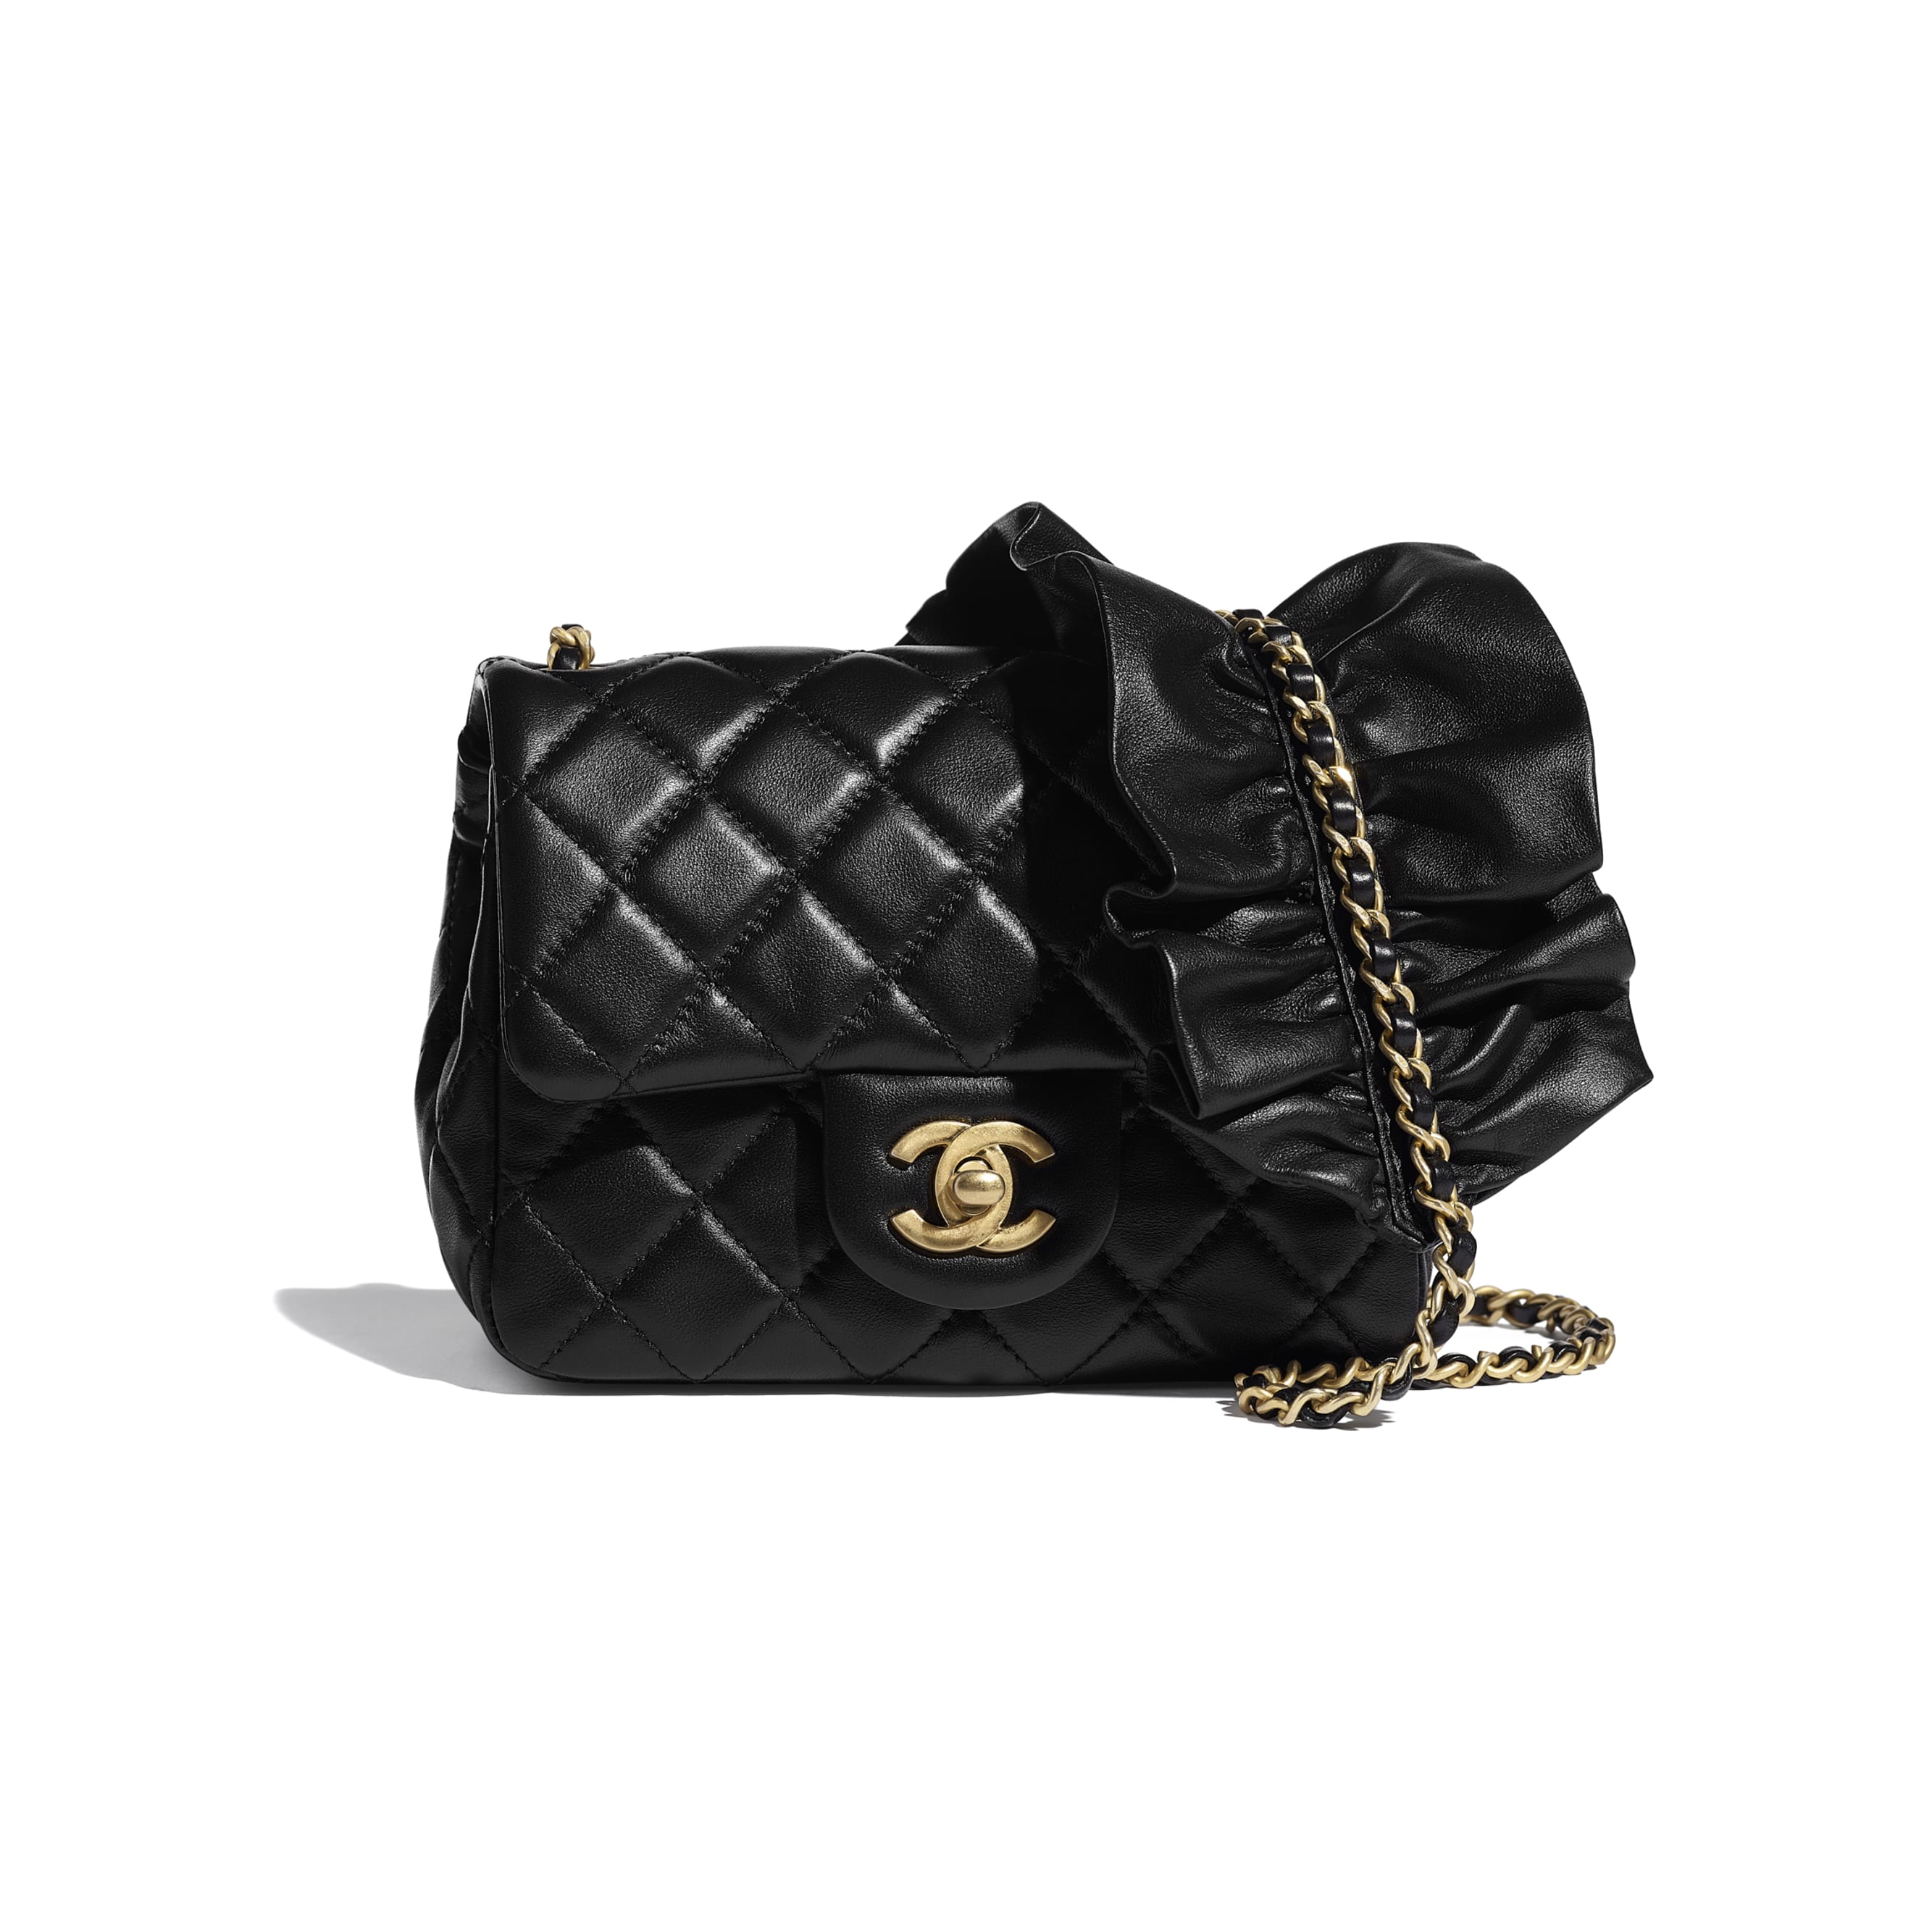 Small Flap Bag - Black - Lambskin - CHANEL - Default view - see standard sized version